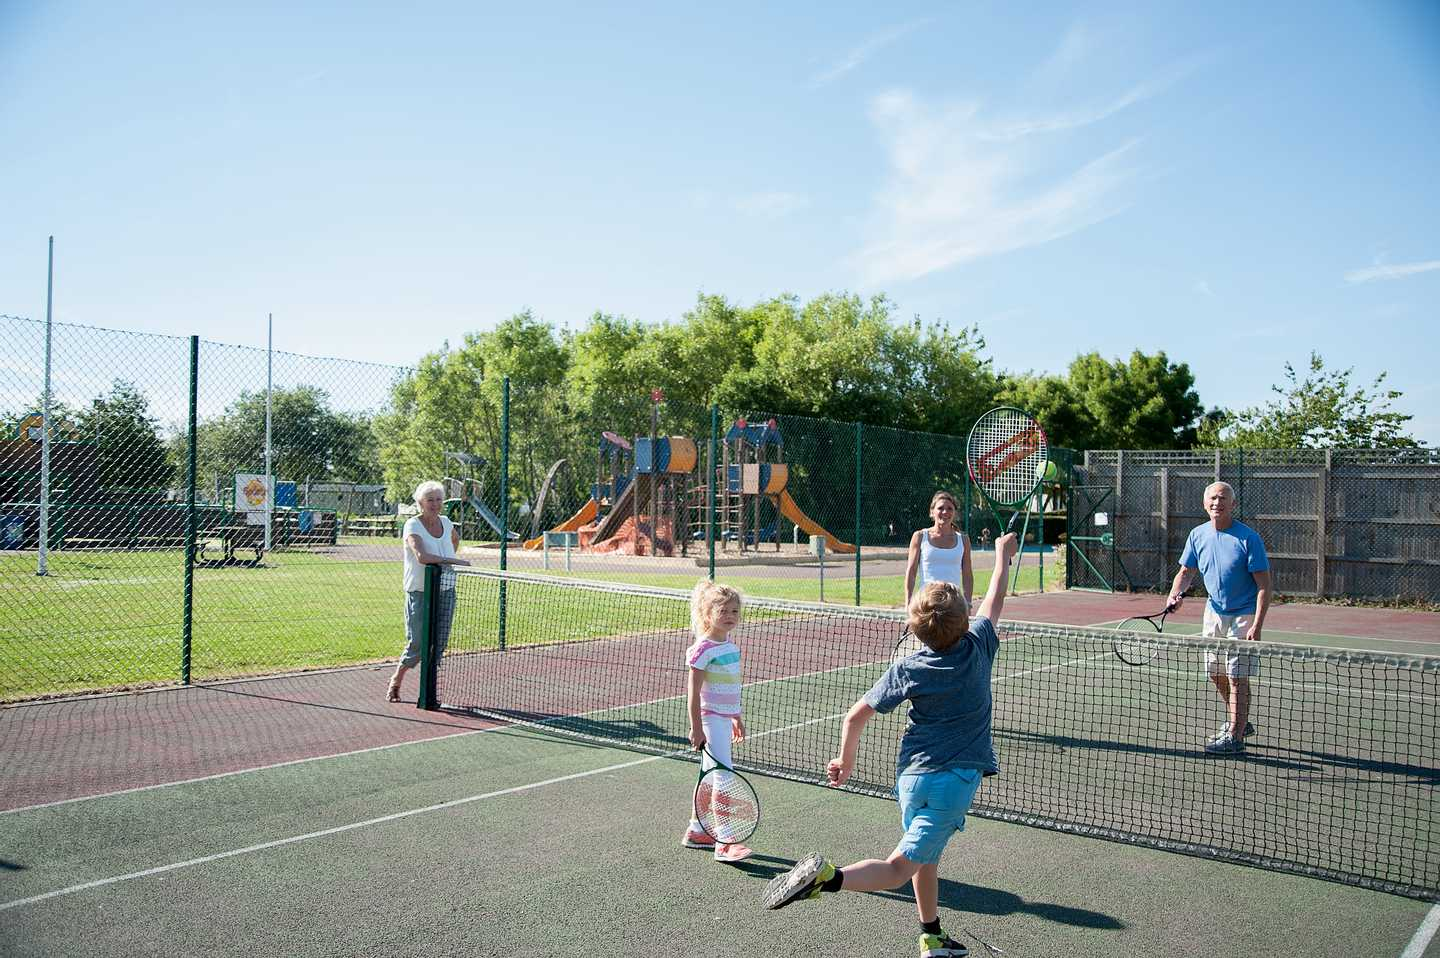 A family playing tennis